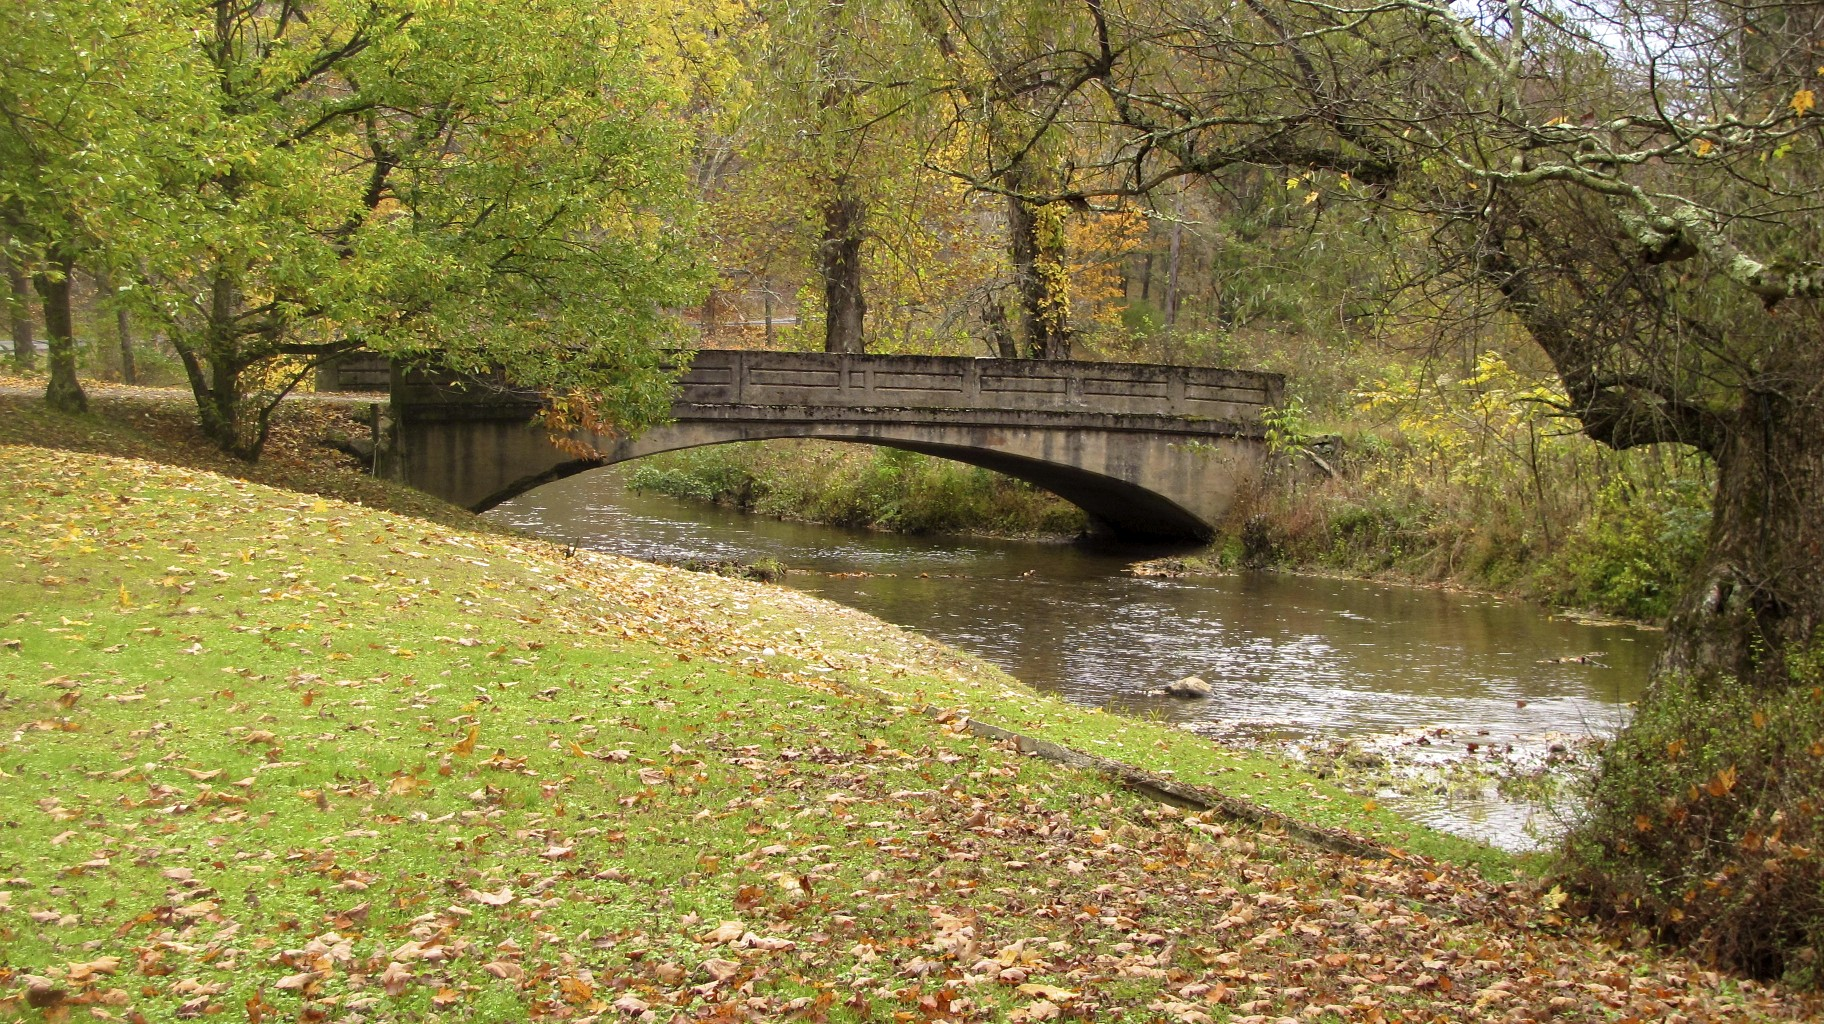 bridge, stream, fall foliage